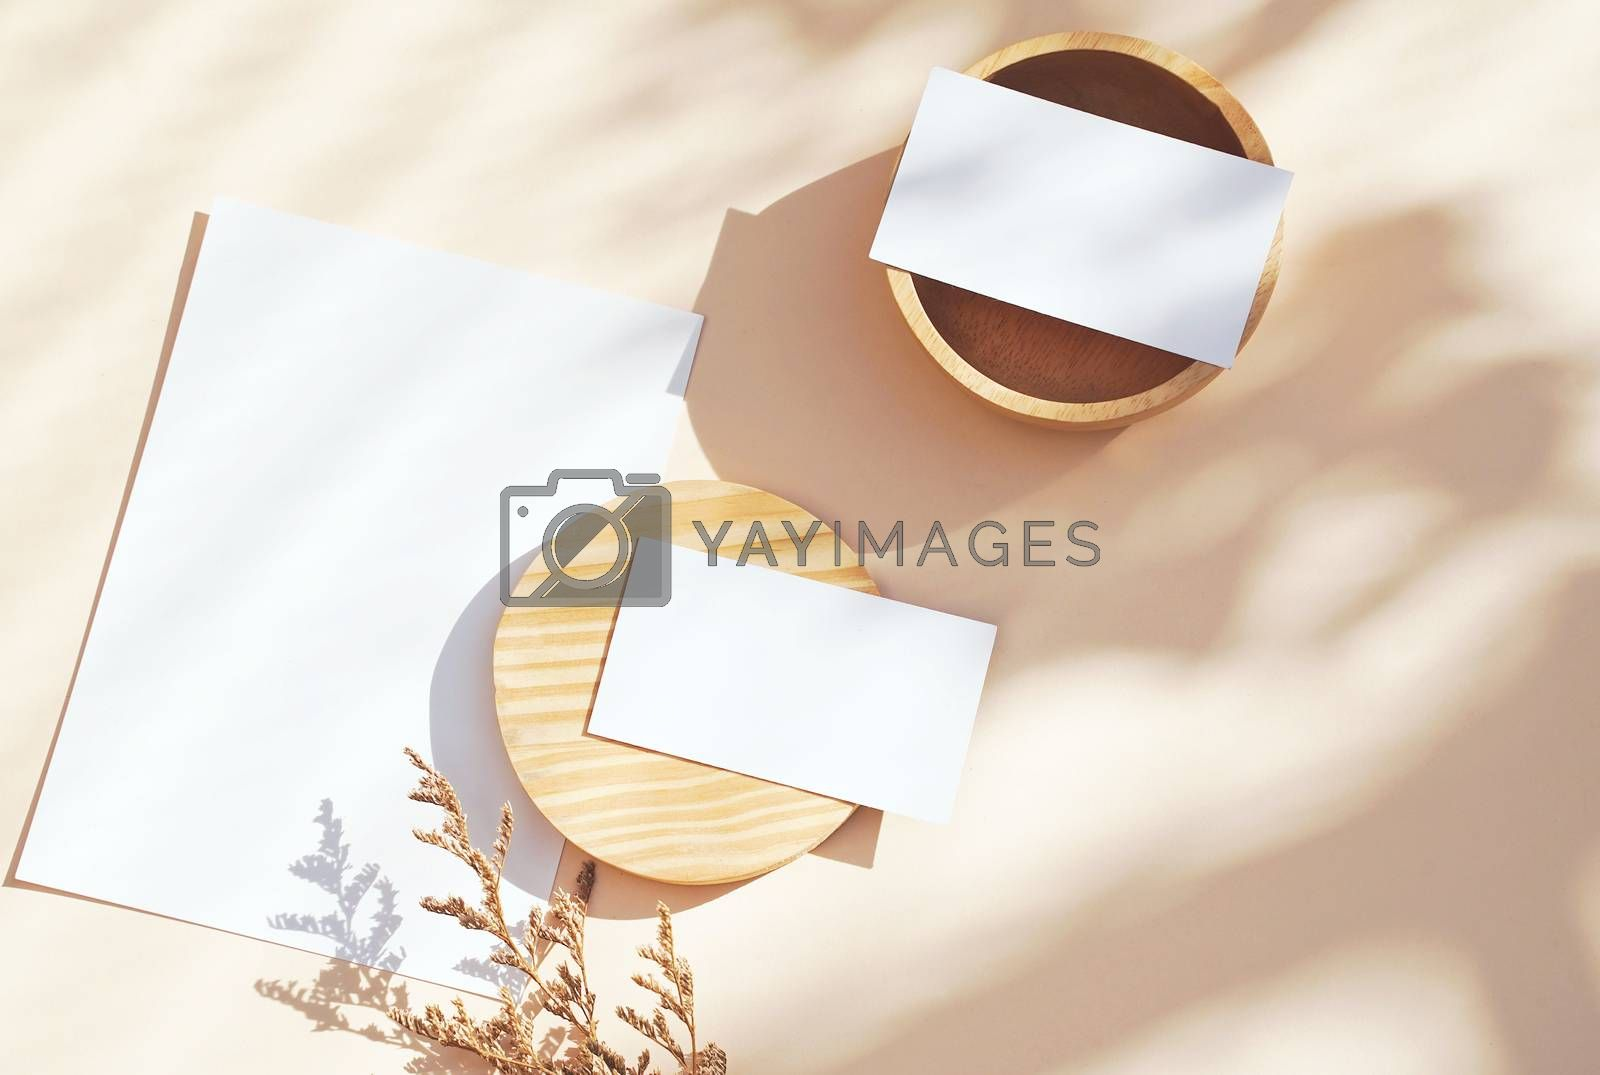 Flat lay of branding identity business name card on yellow background with flower and wooden container, light and shadow shape leaves, minimal concept for design